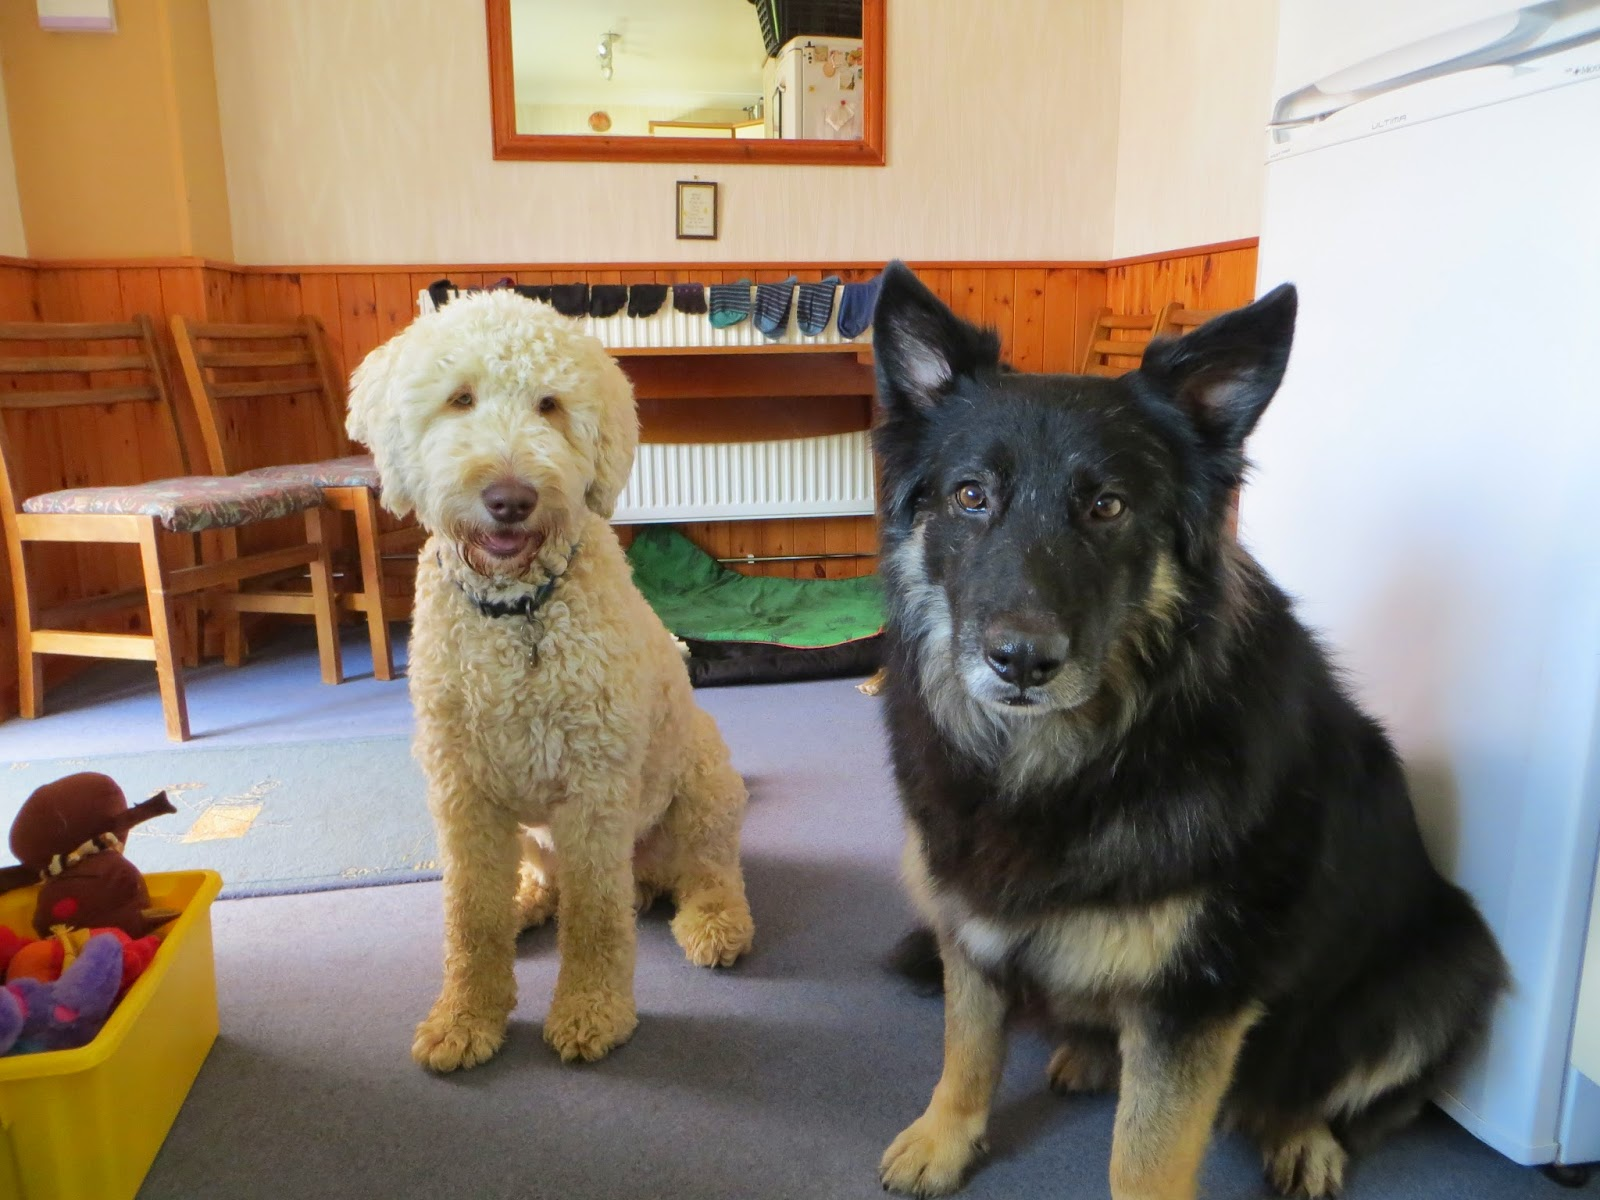 Labradoodle Suny and Collie/Shepherd Trojan